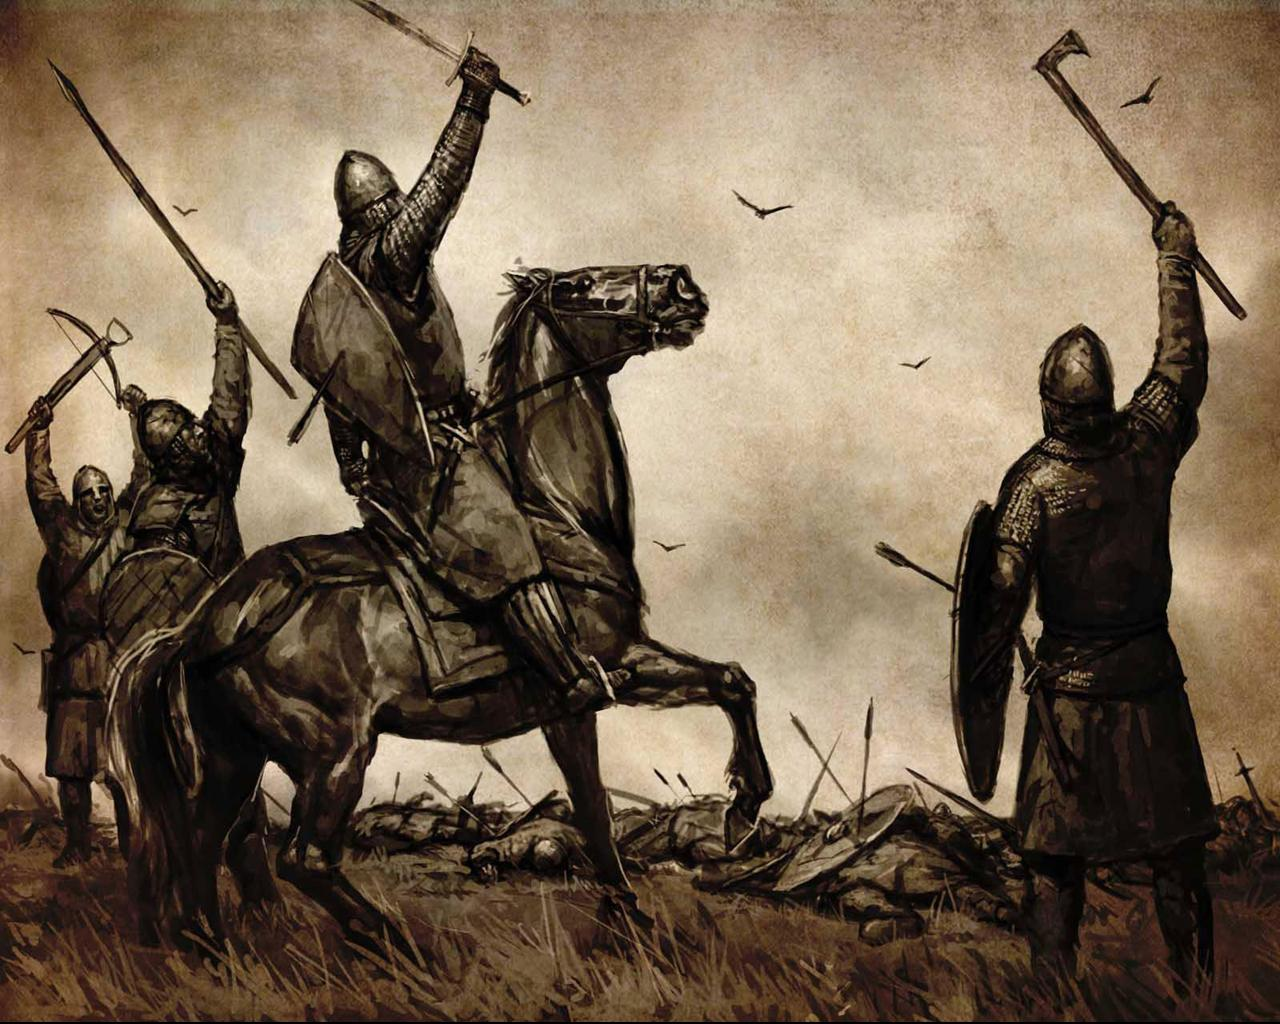 Mount and blade bannerlord mac download